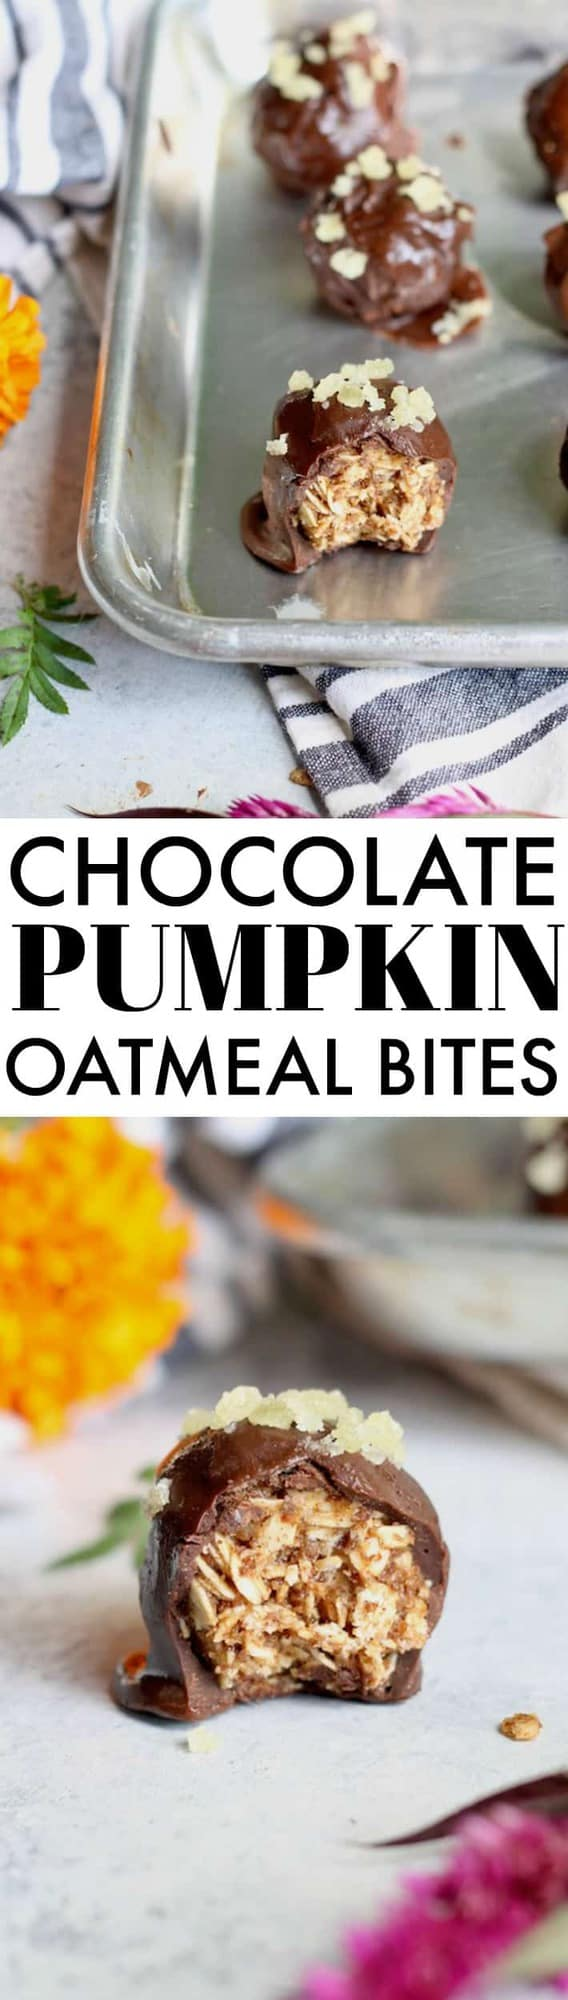 These super easy and delicious Chocolate Covered Pumpkin Spice Oatmeal Bites are a whole grain snack doubles as a dessert packed with fall flavor!